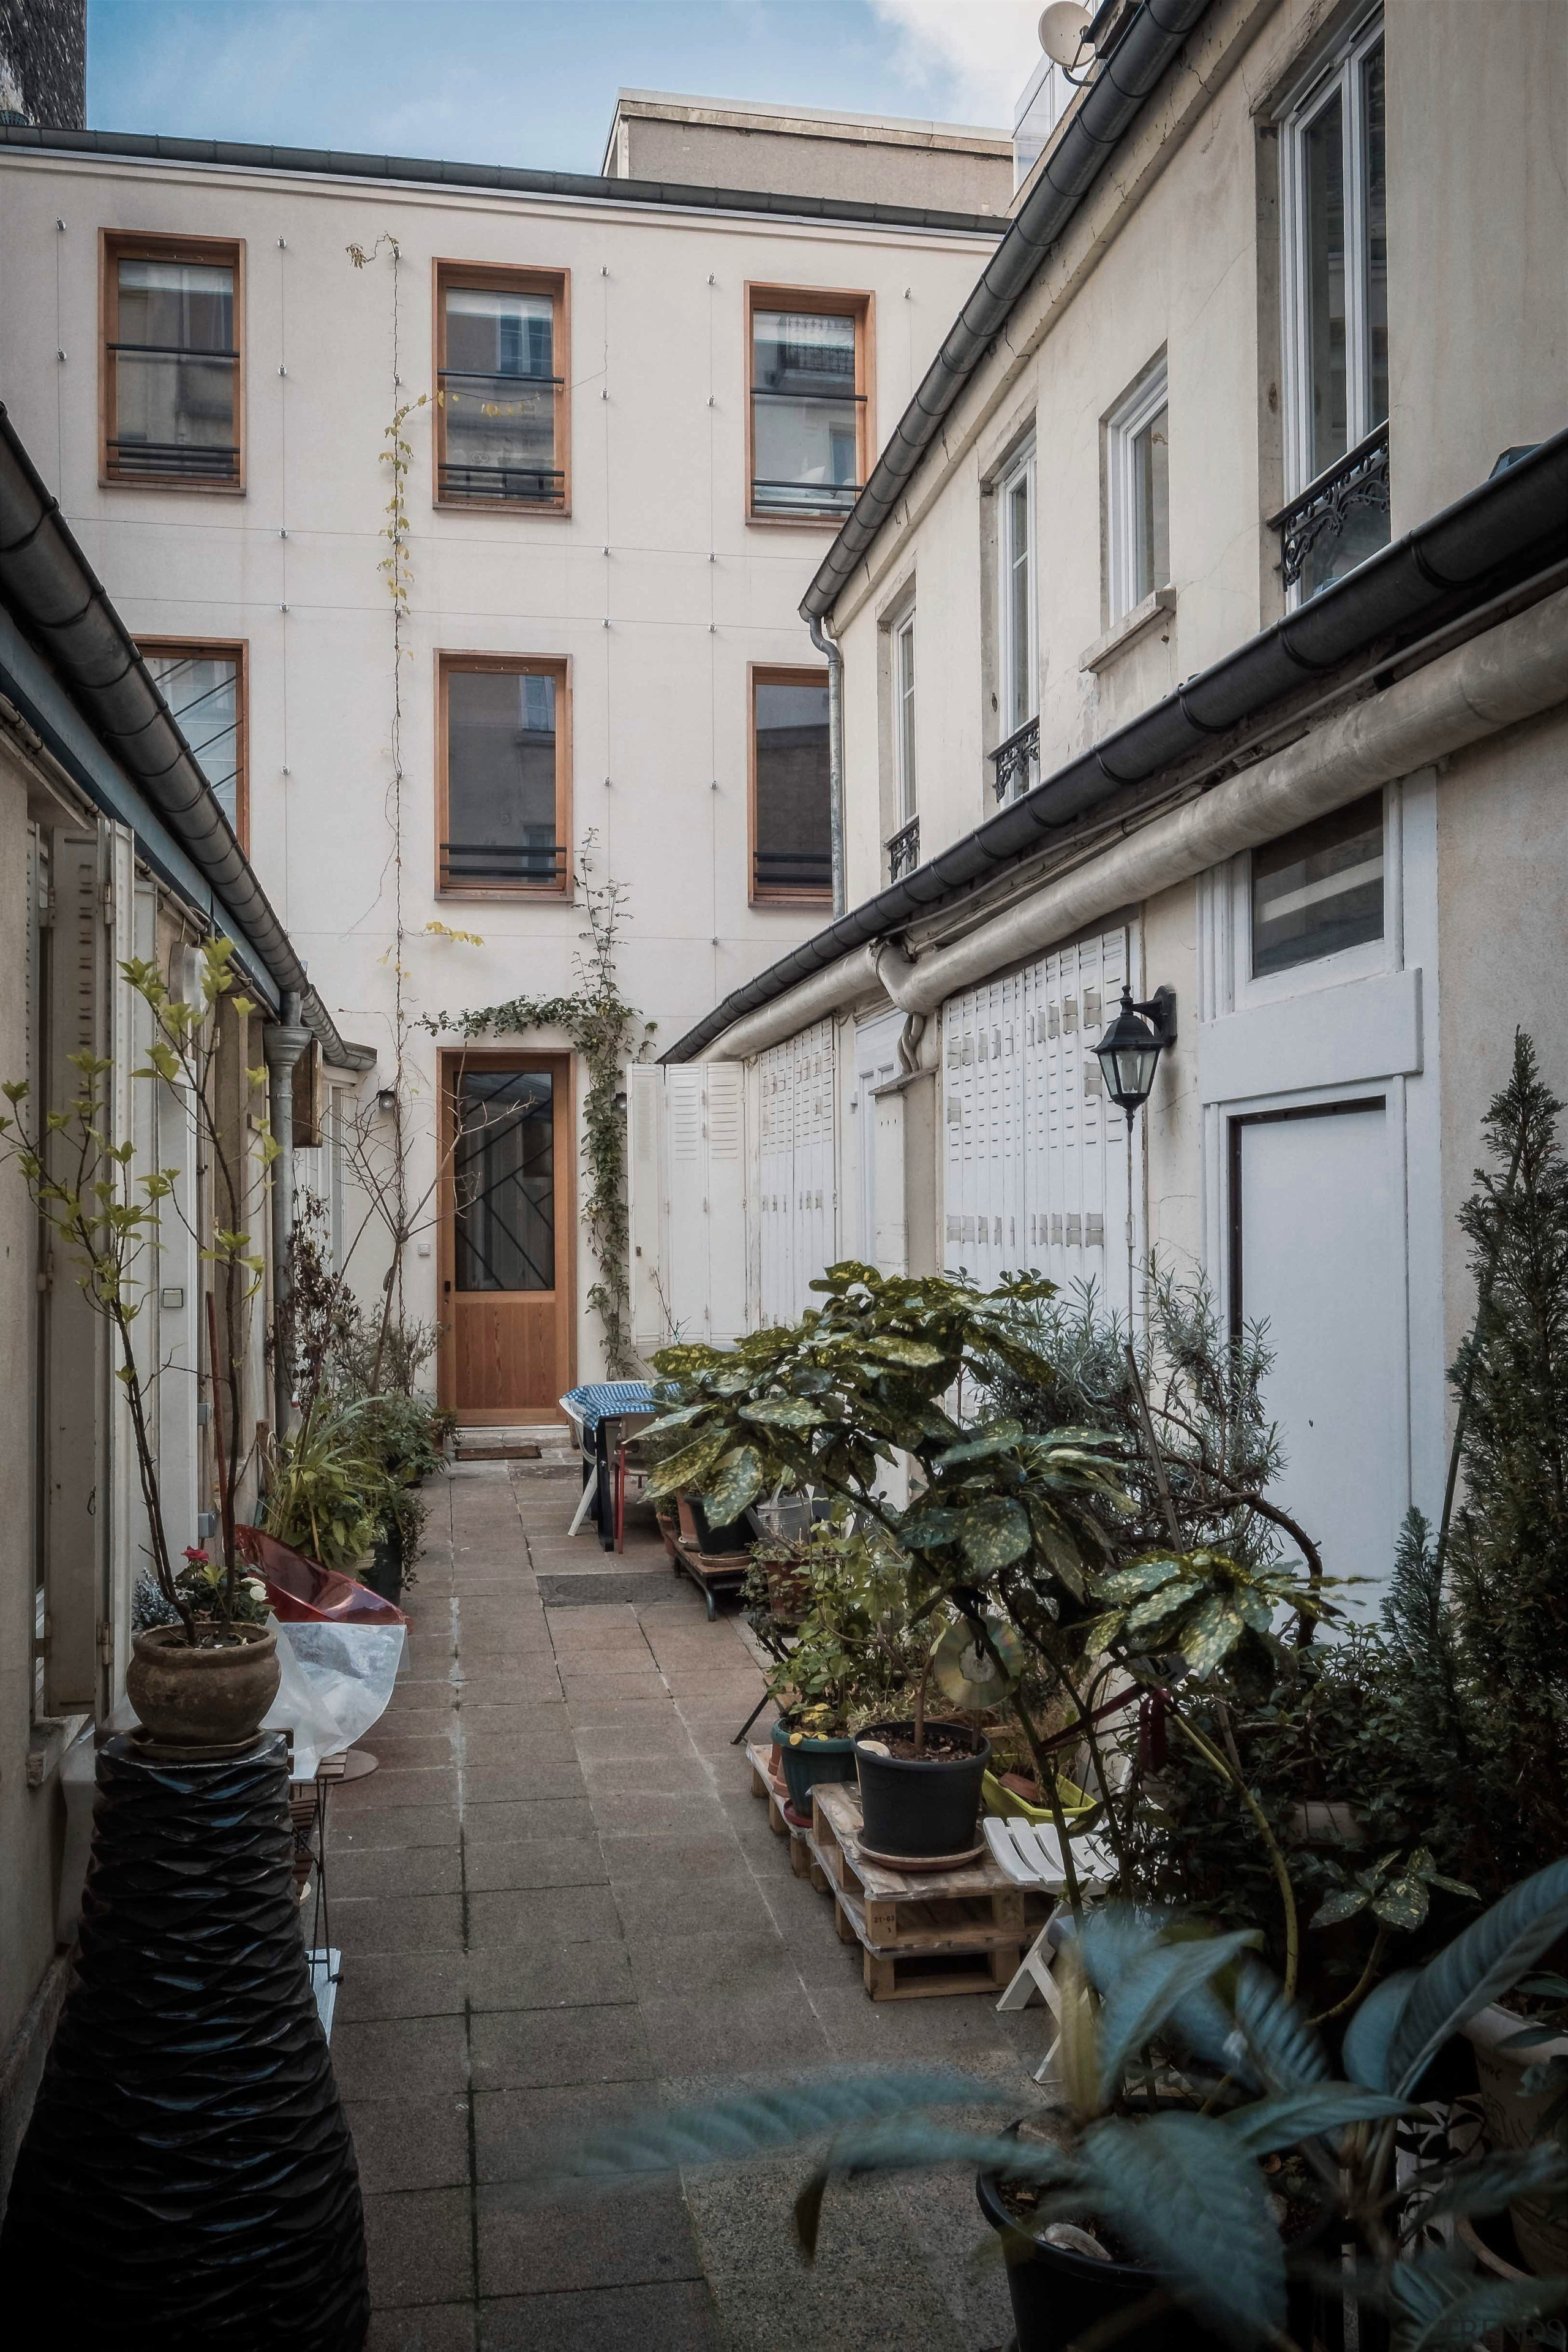 A 3 storey family home in Paris gets alley, architecture, building, courtyard, facade, house, infrastructure, neighbourhood, road, street, town, tree, gray, black